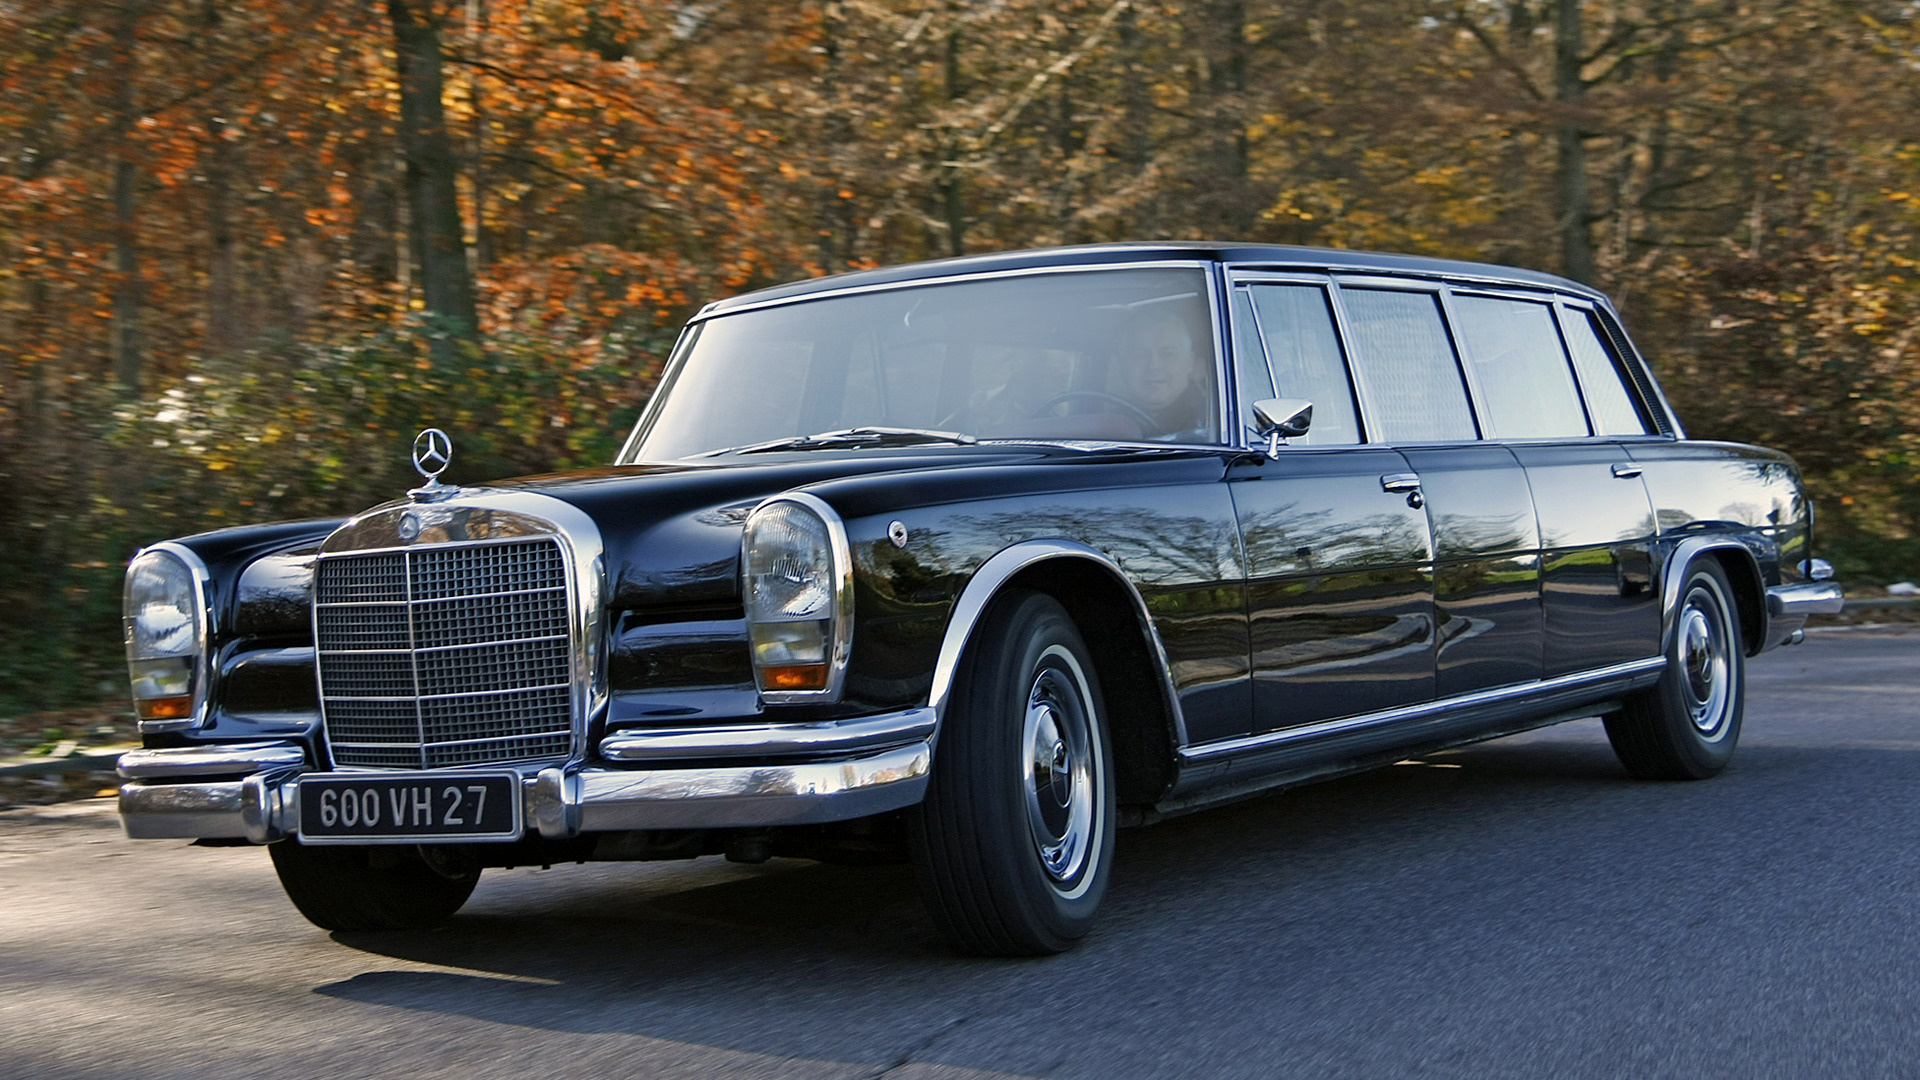 Toyota Of Pullman >> 1964 Mercedes-Benz 600 Pullman - Wallpapers and HD Images | Car Pixel